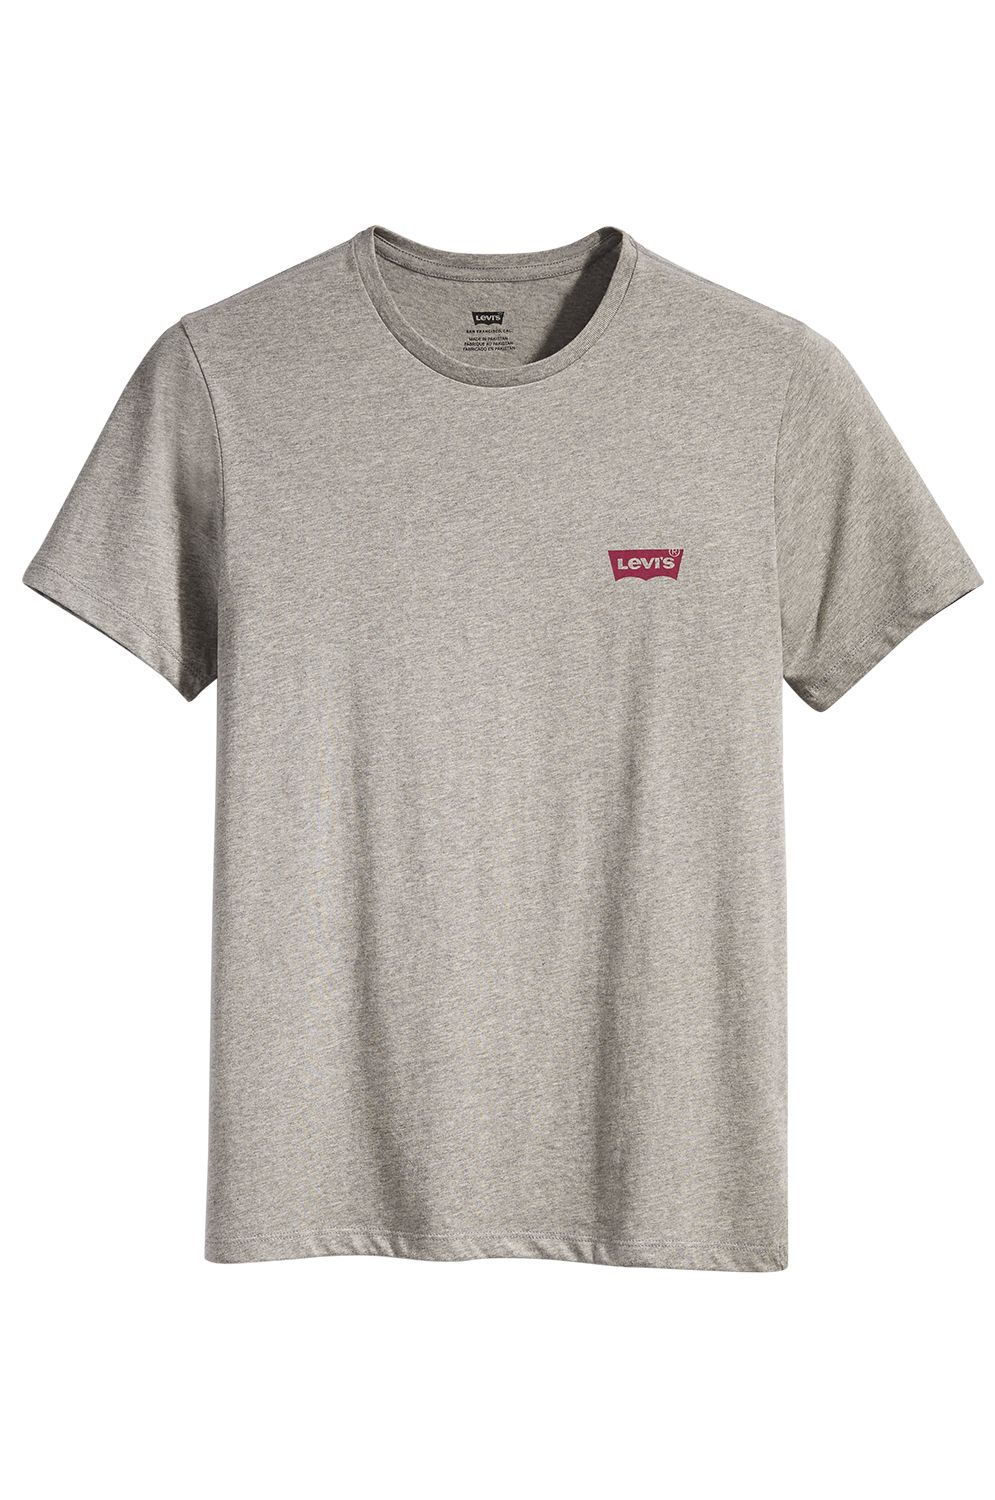 T-Shirt Levis CREWNECK GRAPHIC Mid Tone Grey Heather